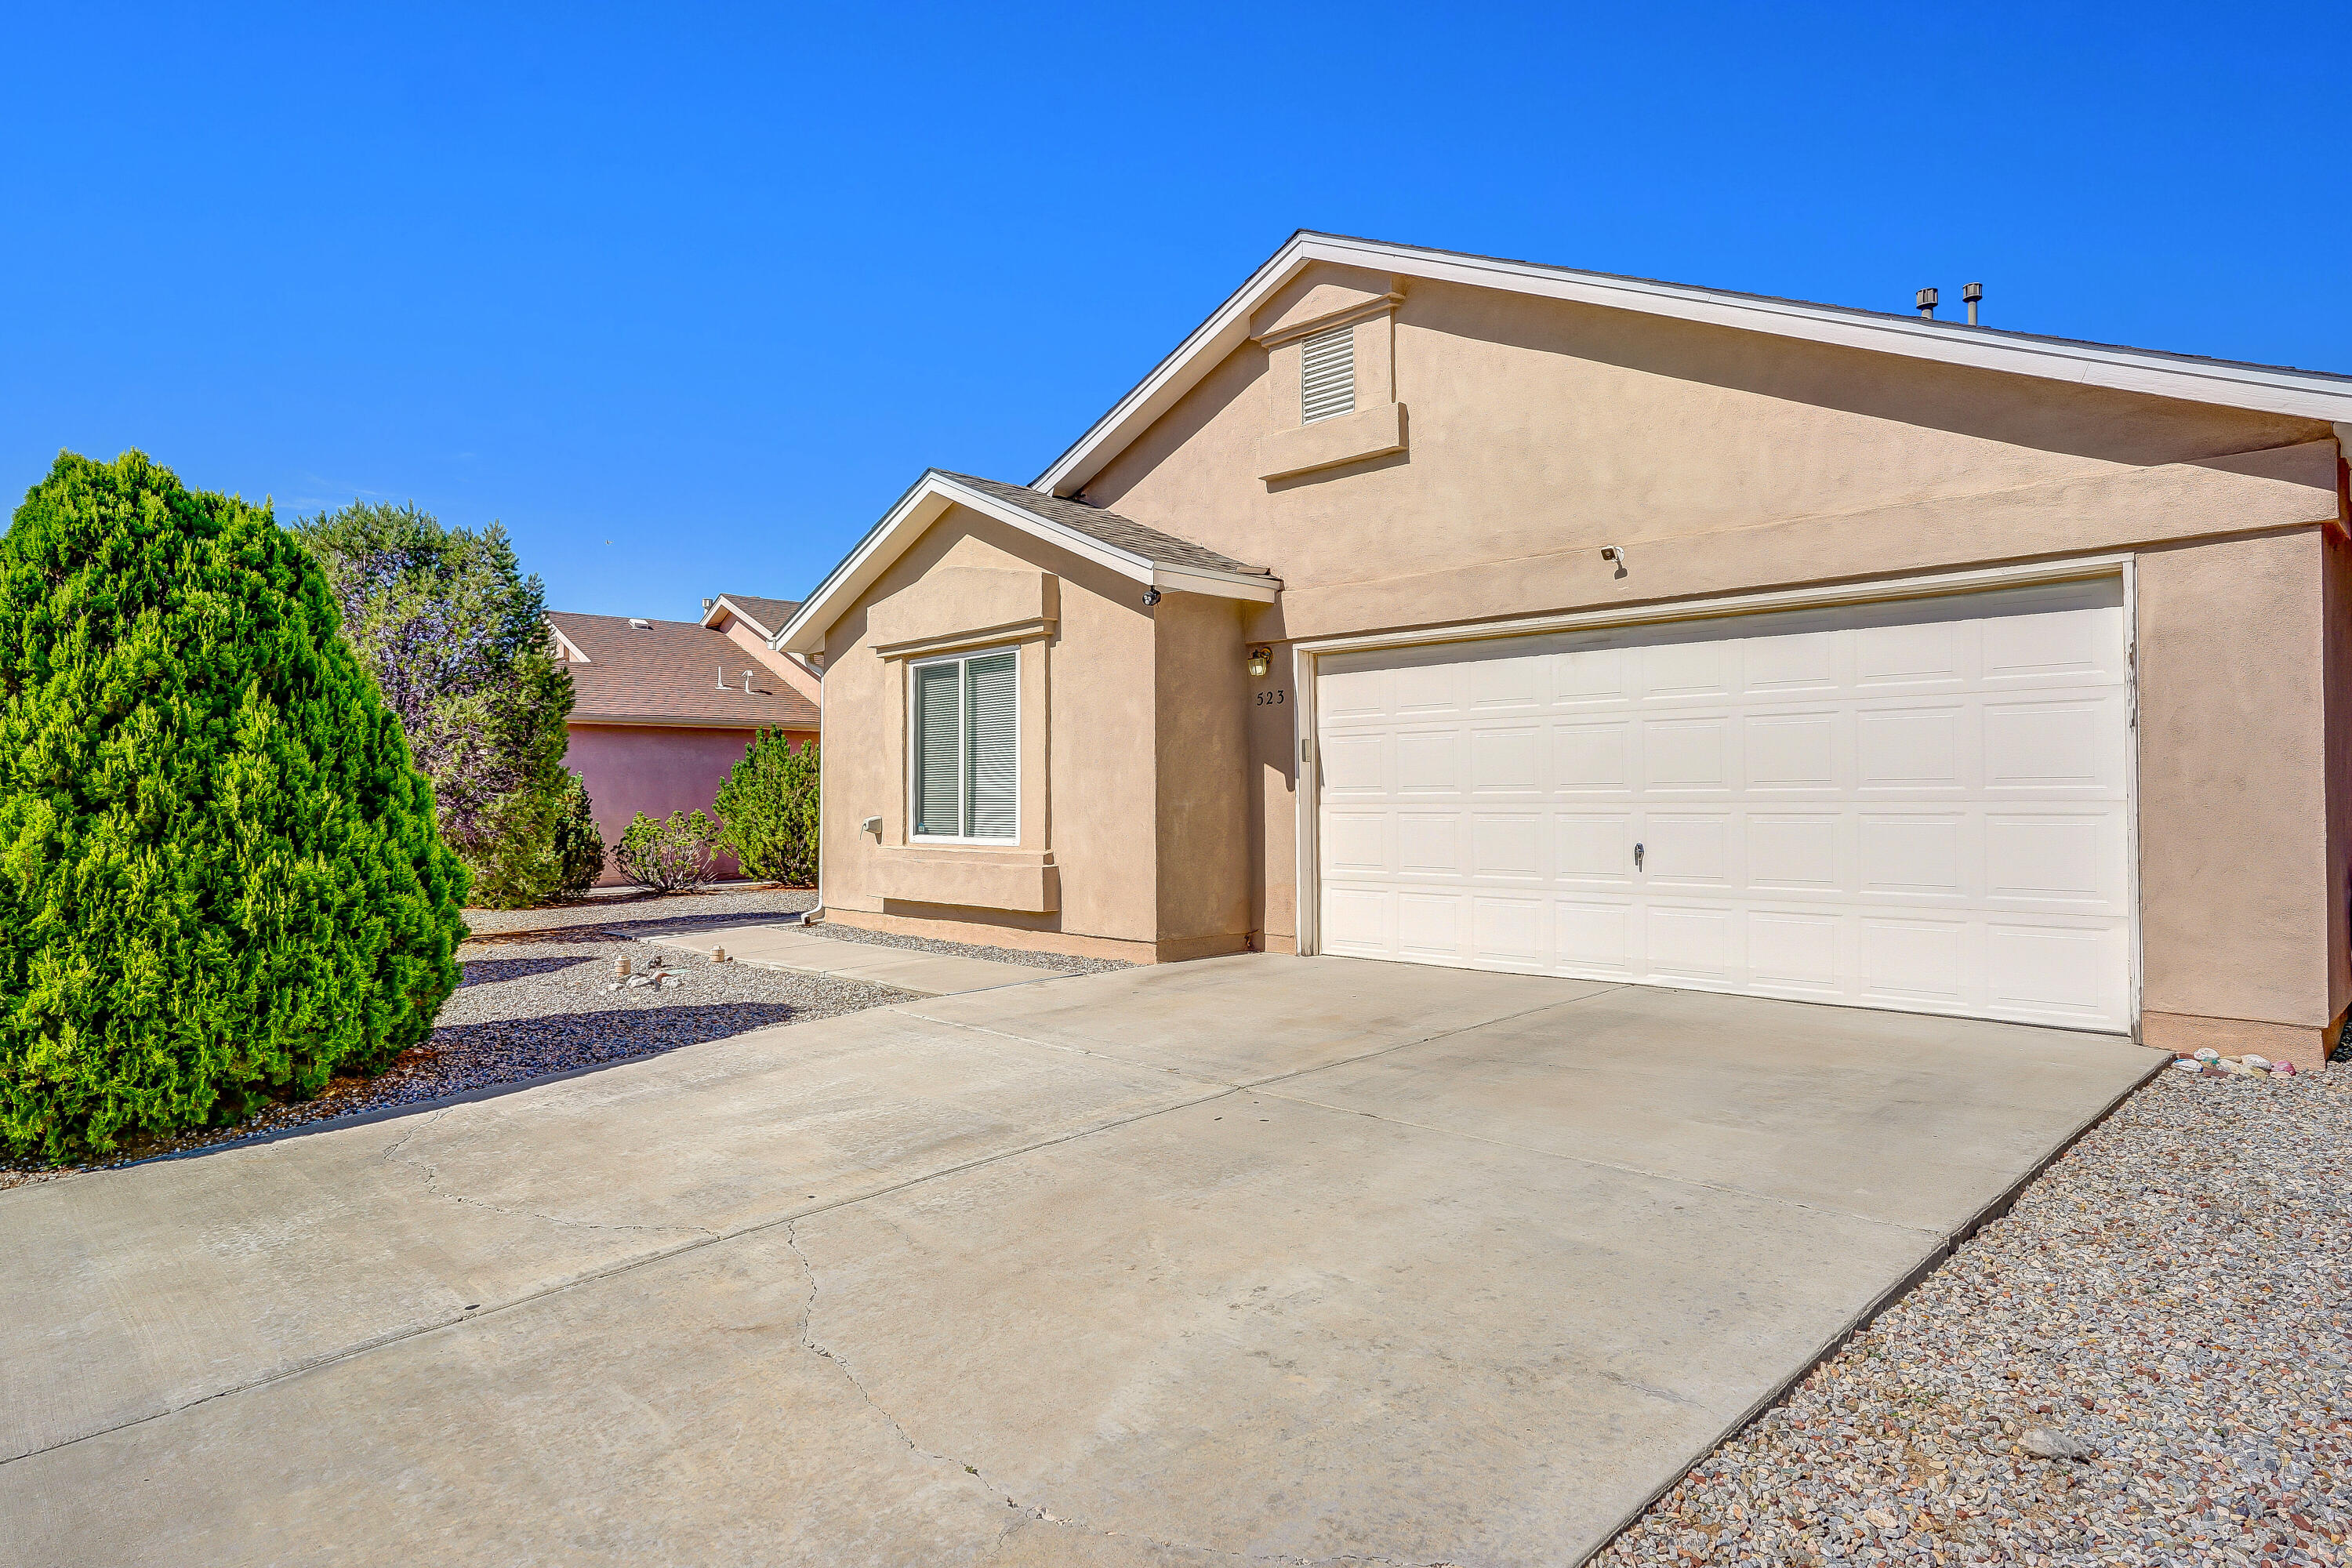 Wonderful 4 Bed 2 Bath in Mirabella.  Owner has switched to refrig air recently.  Huge living room, newer laminate flooring and lots of closet space with organization!   Large front and back with small amount of turf in backyard.  Easy upkeep! So close to shopping and to Sandia Base.  A must see!